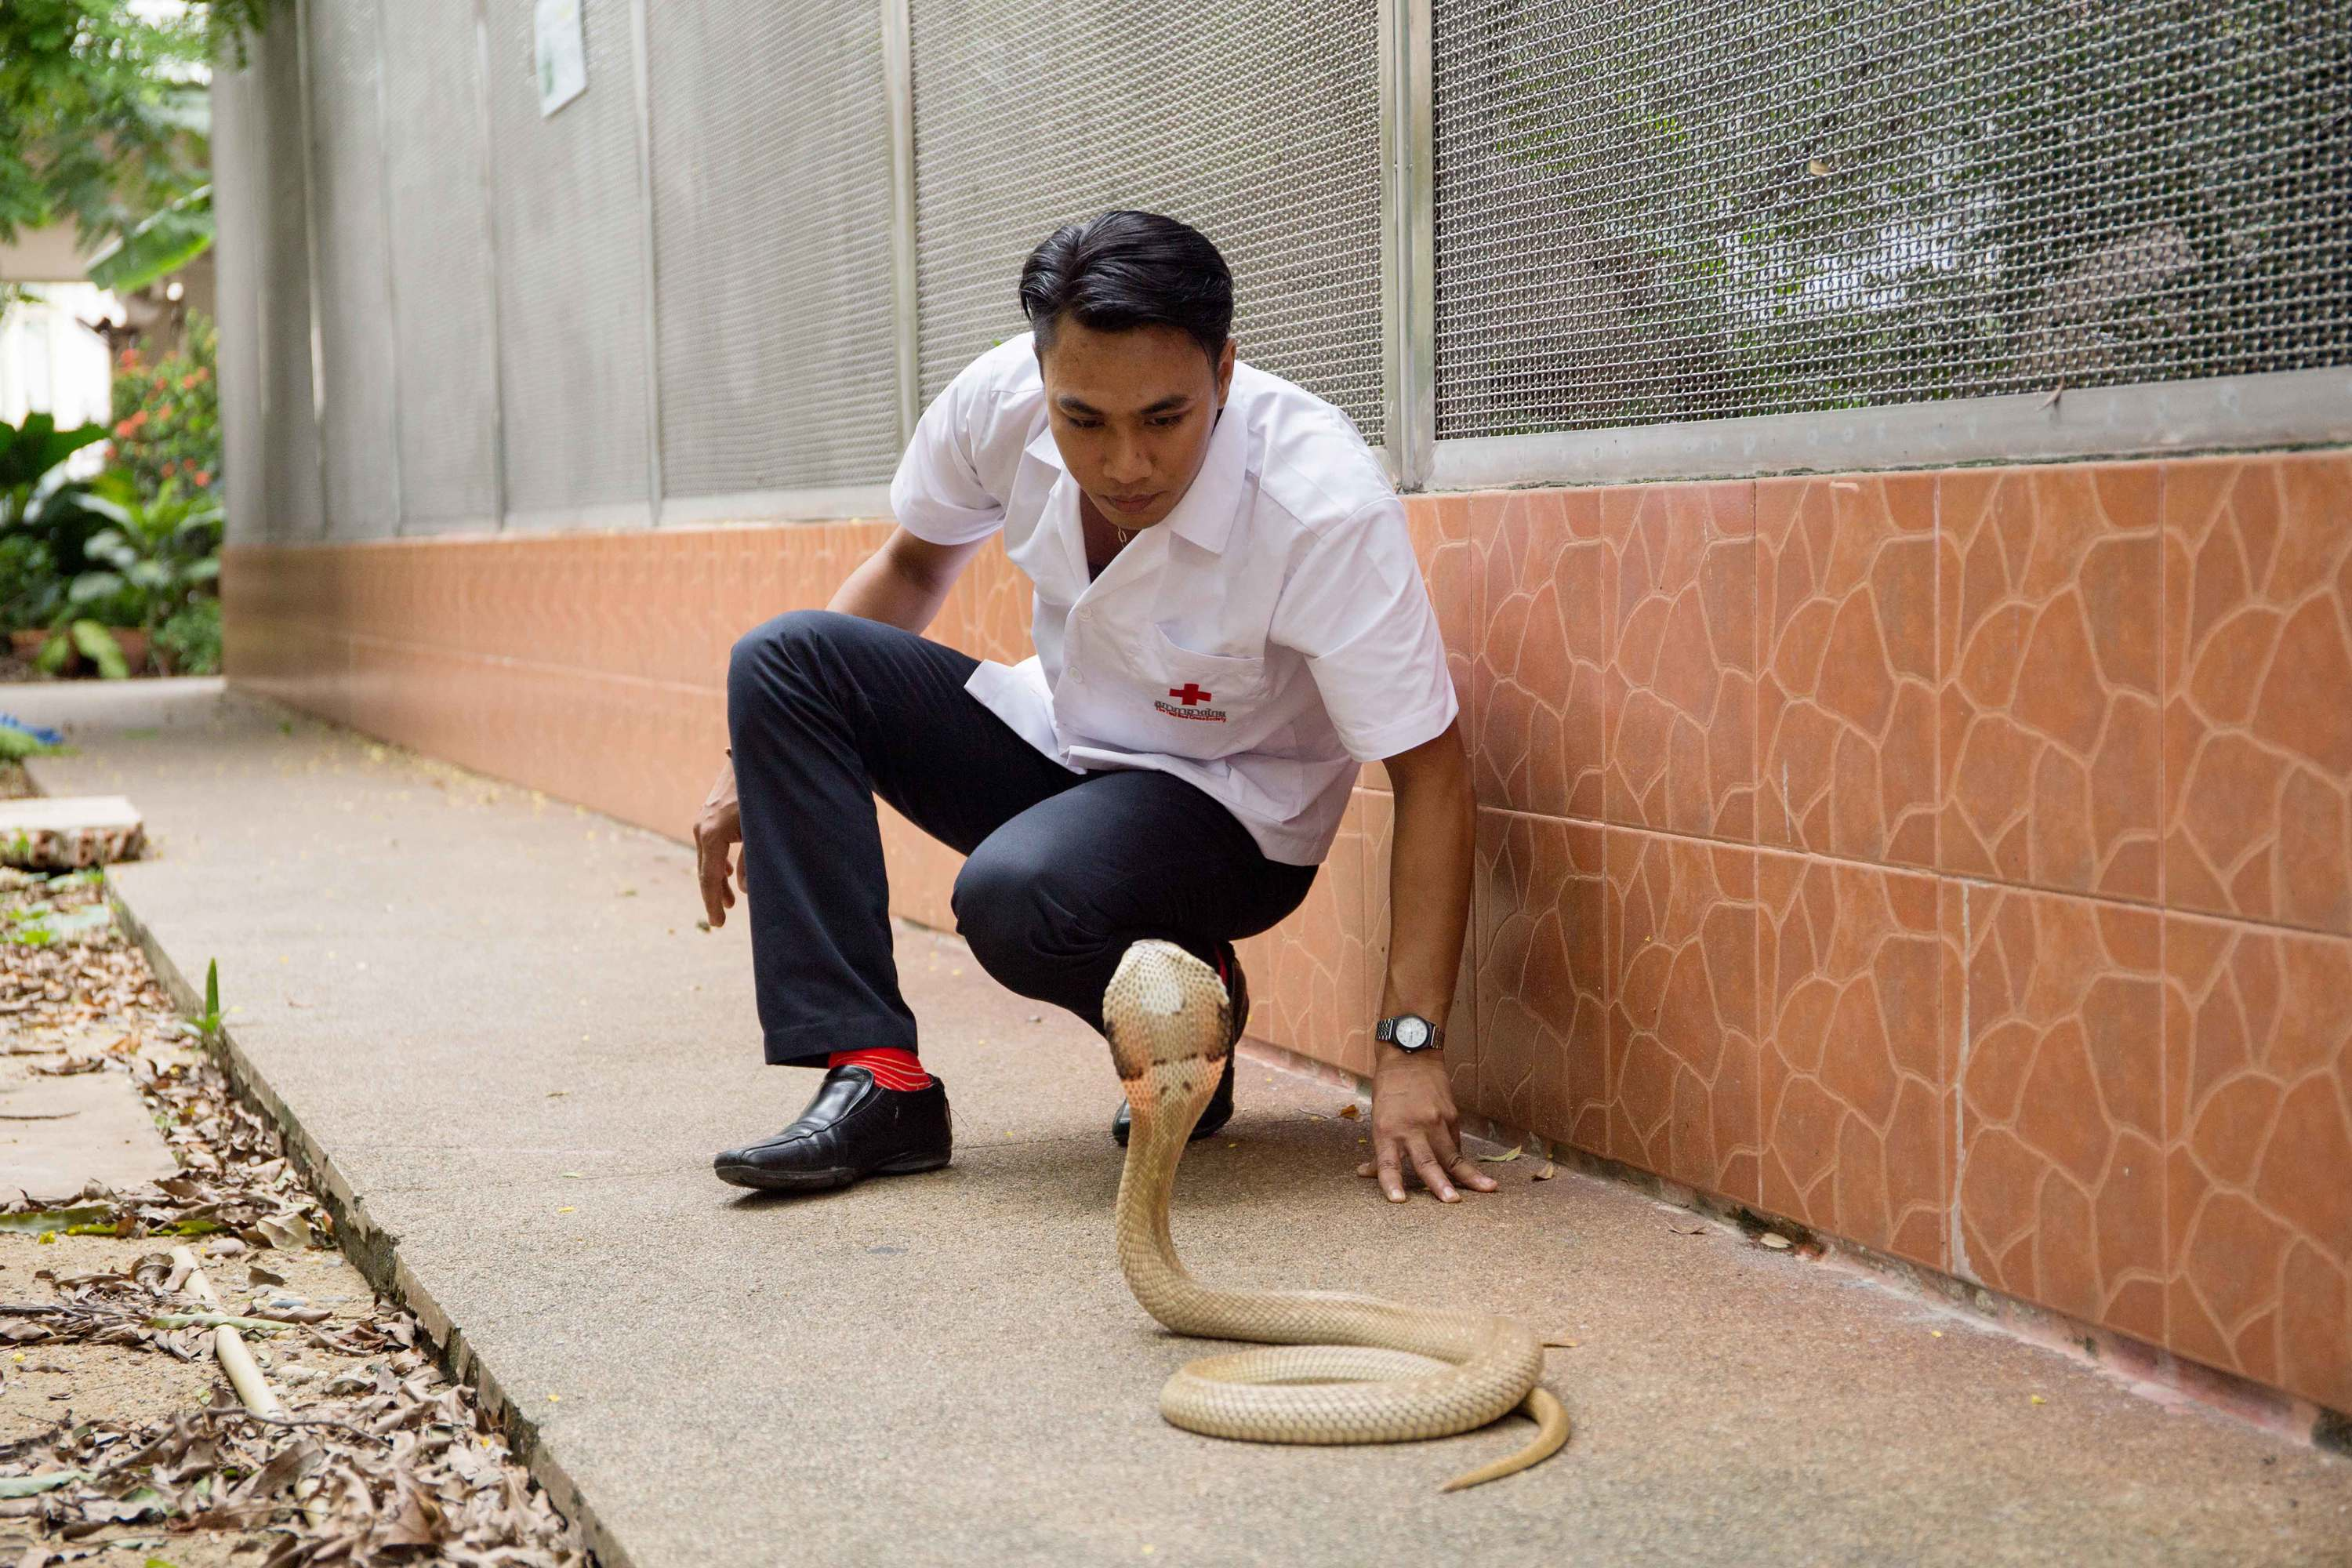 Quit your job, become a ... venomous snake caretaker